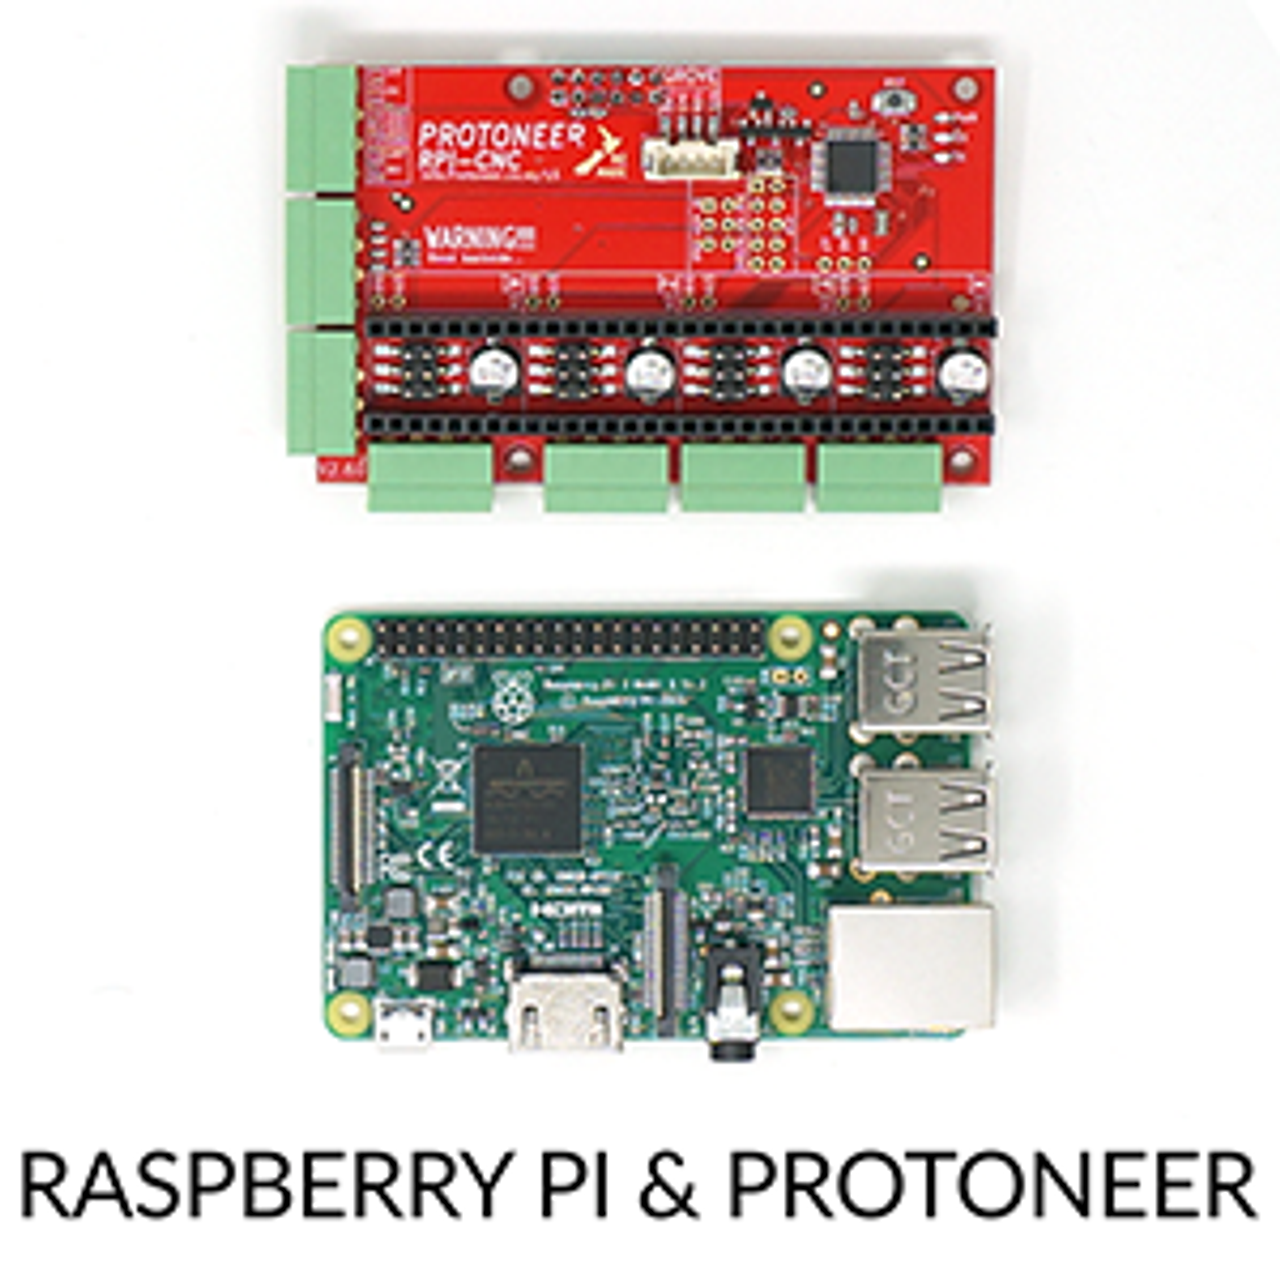 Official Protoneer & Raspberry Pi